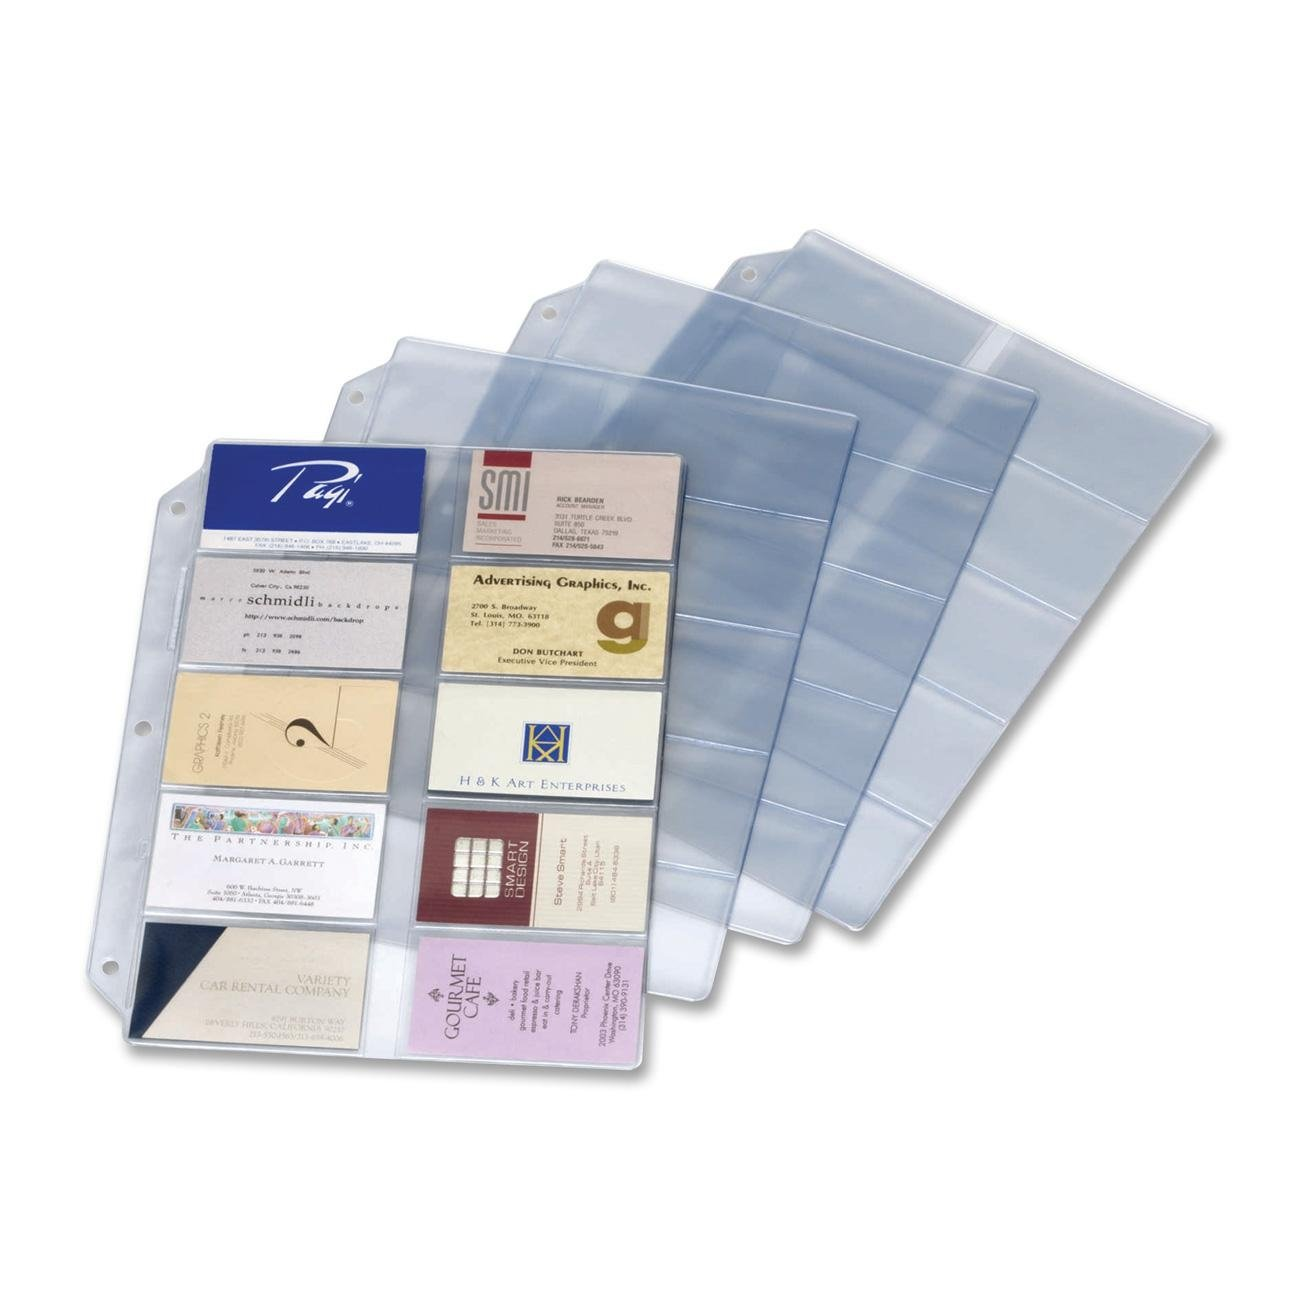 Amazon cardinal business card refills 7856 000 amazon cardinal business card refills 7856 000 transparent business card protectors office products magicingreecefo Choice Image